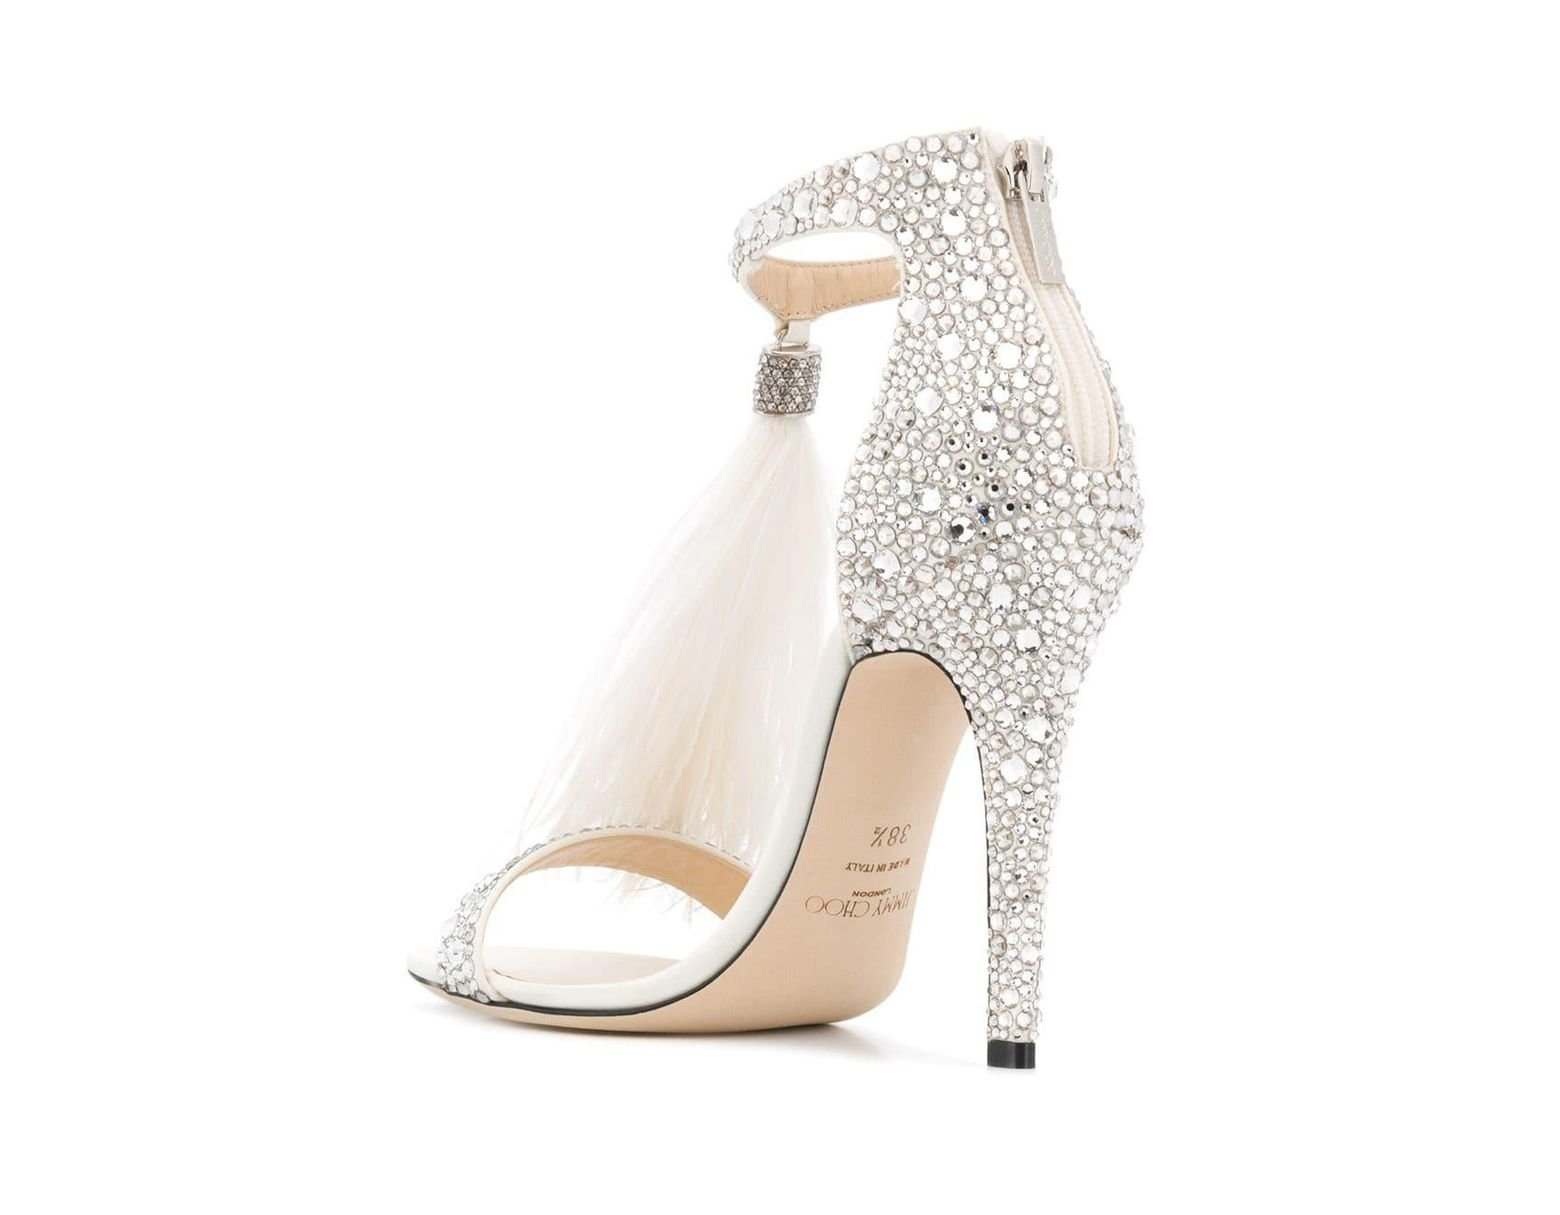 ed91cf07c45 Jimmy Choo Encrusted Details Sandals in White - Save 20% - Lyst